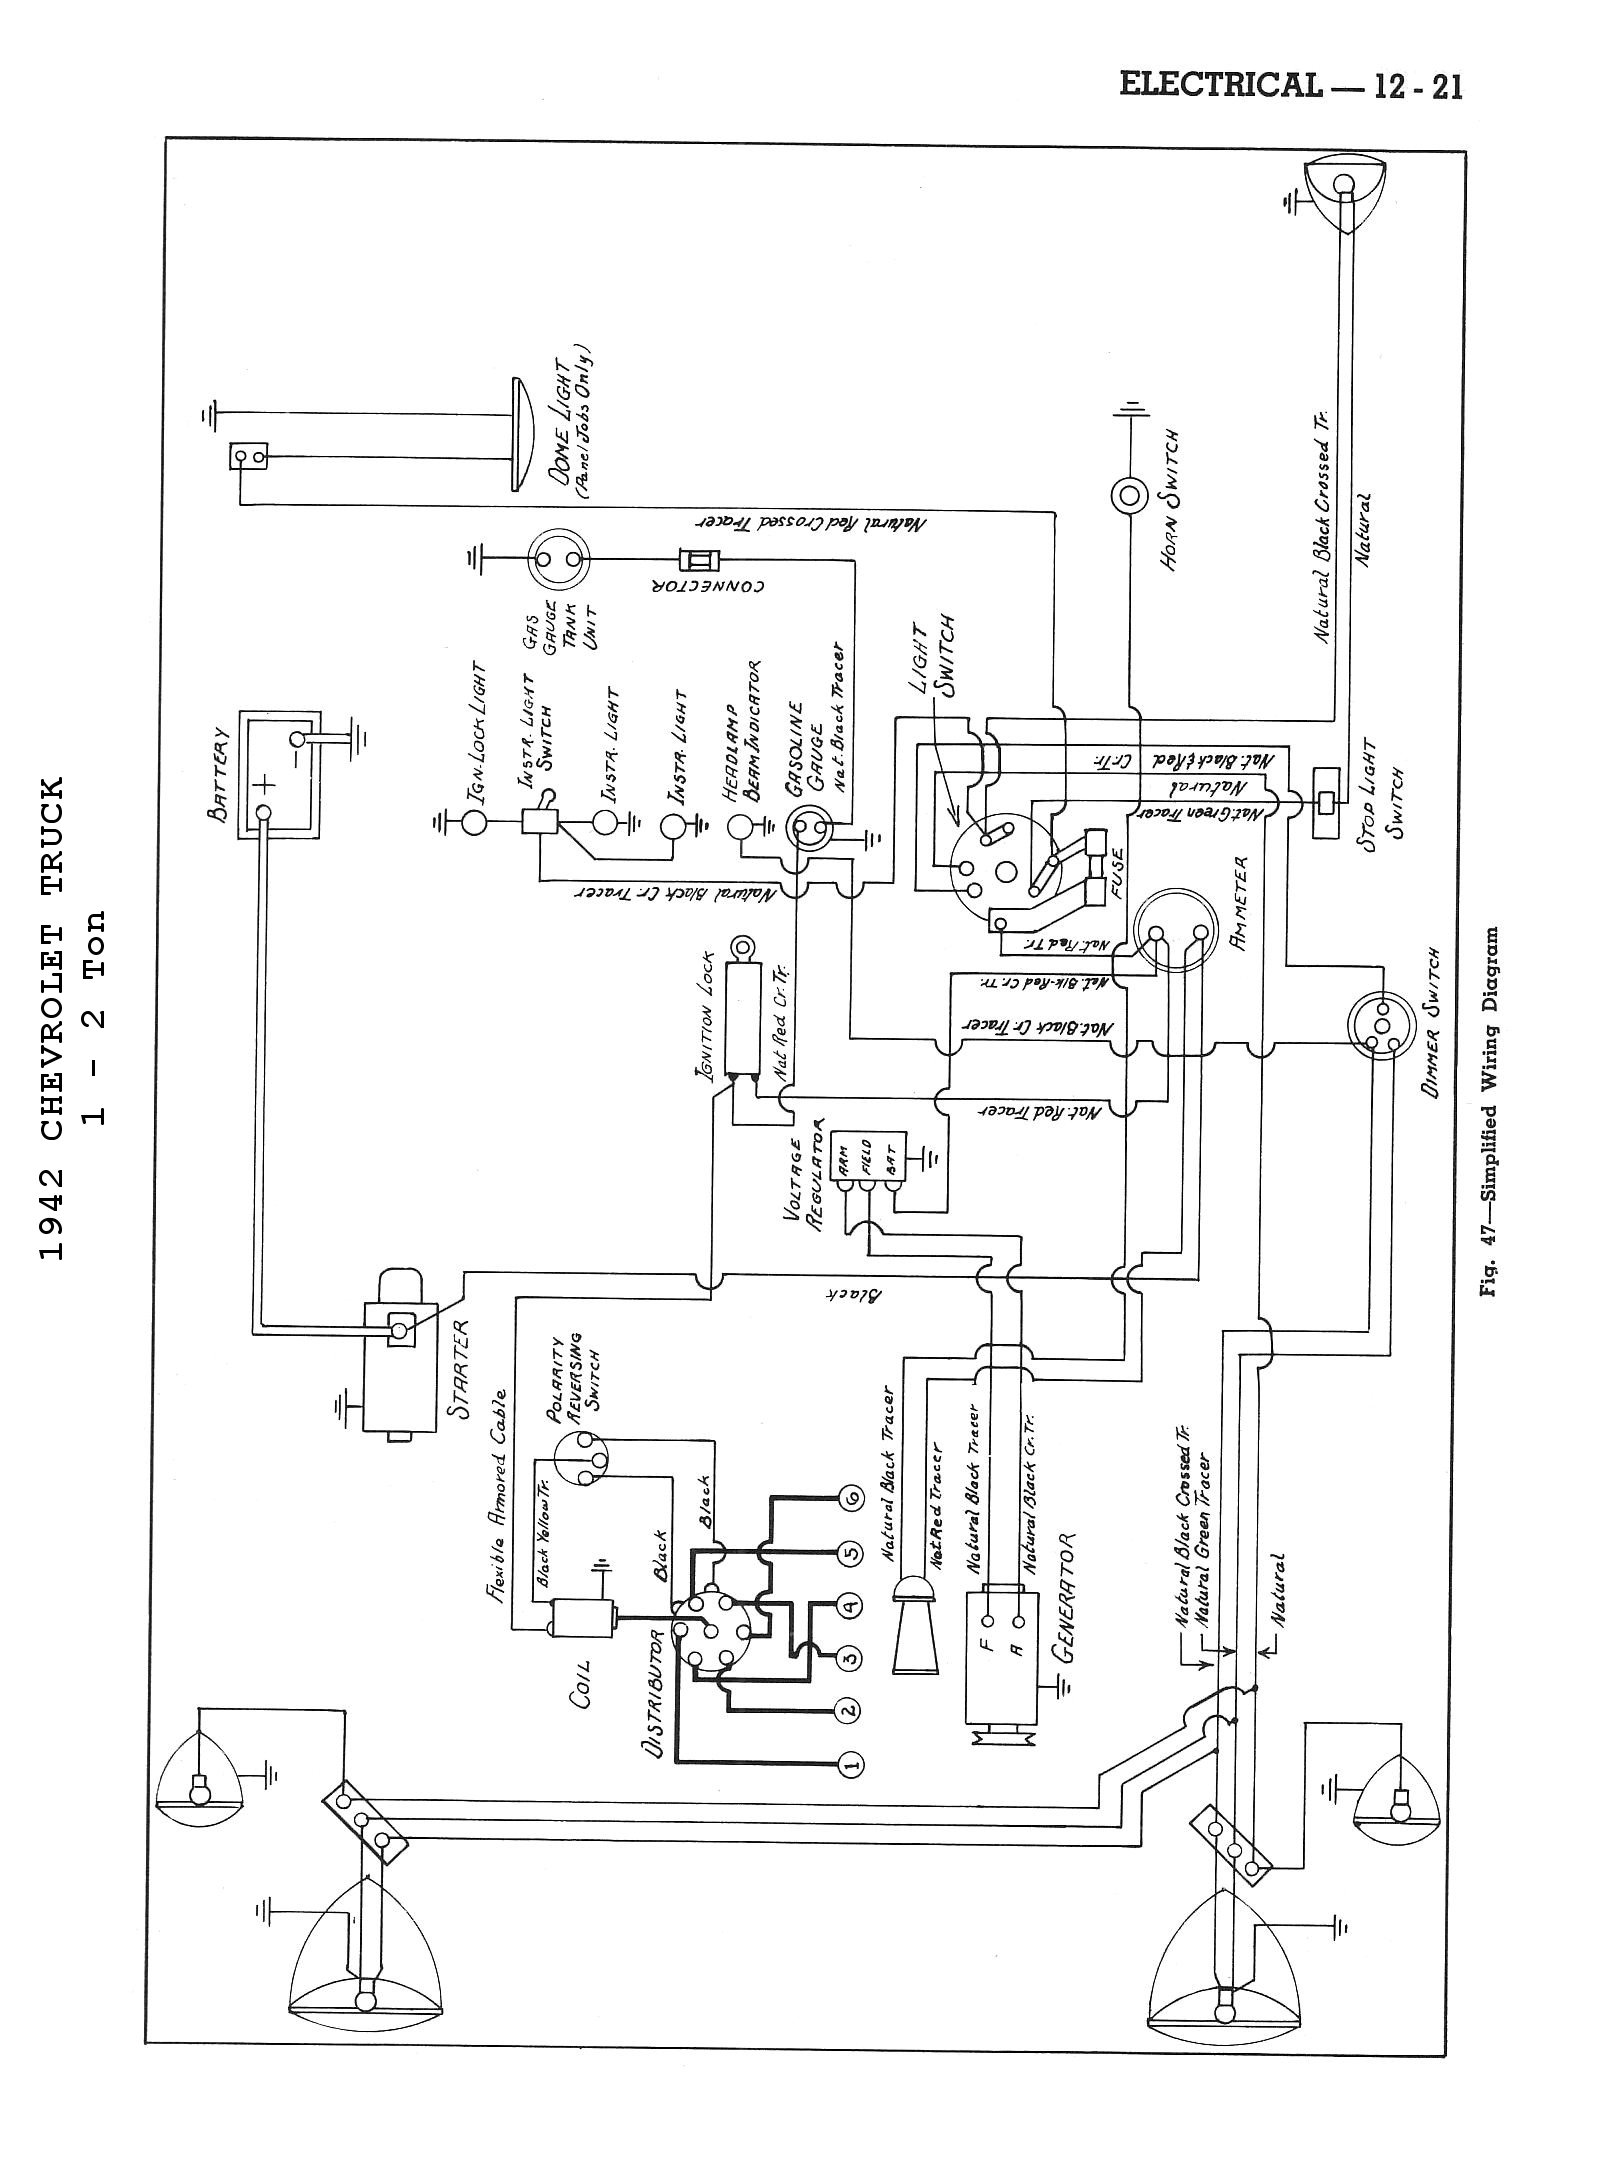 42cm4x2t1221 chevy wiring diagrams Basic Turn Signal Wiring Diagram at crackthecode.co